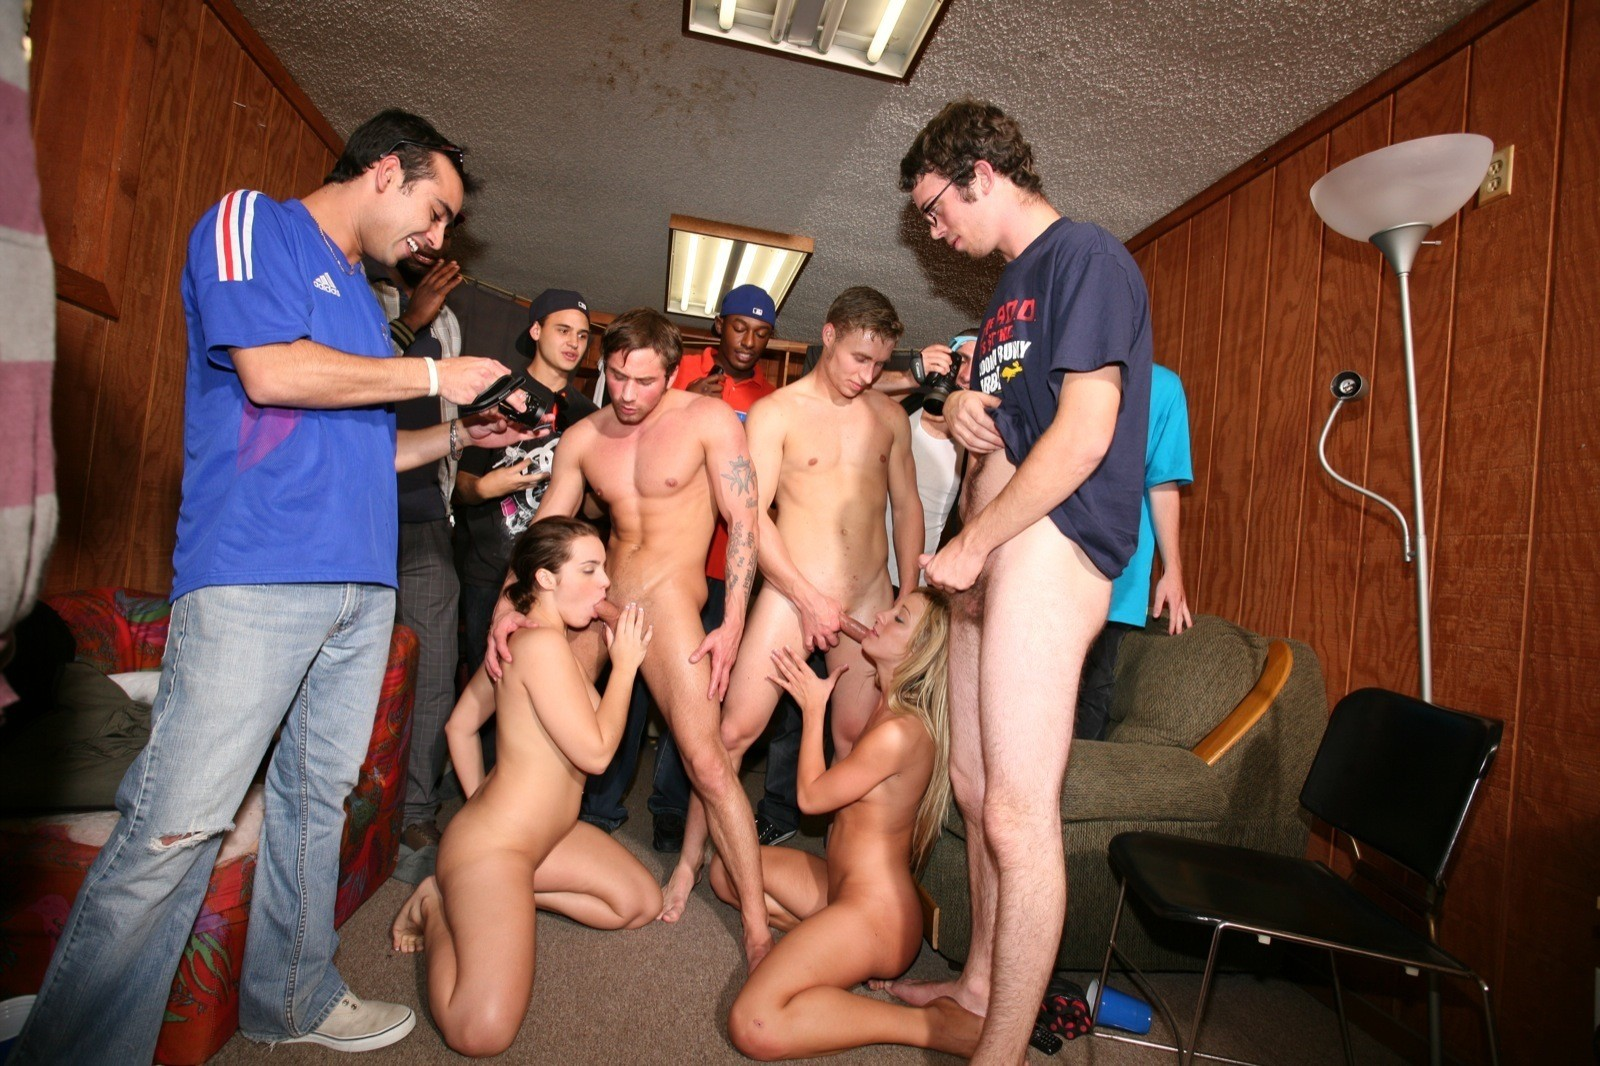 Sex party nice House Wife